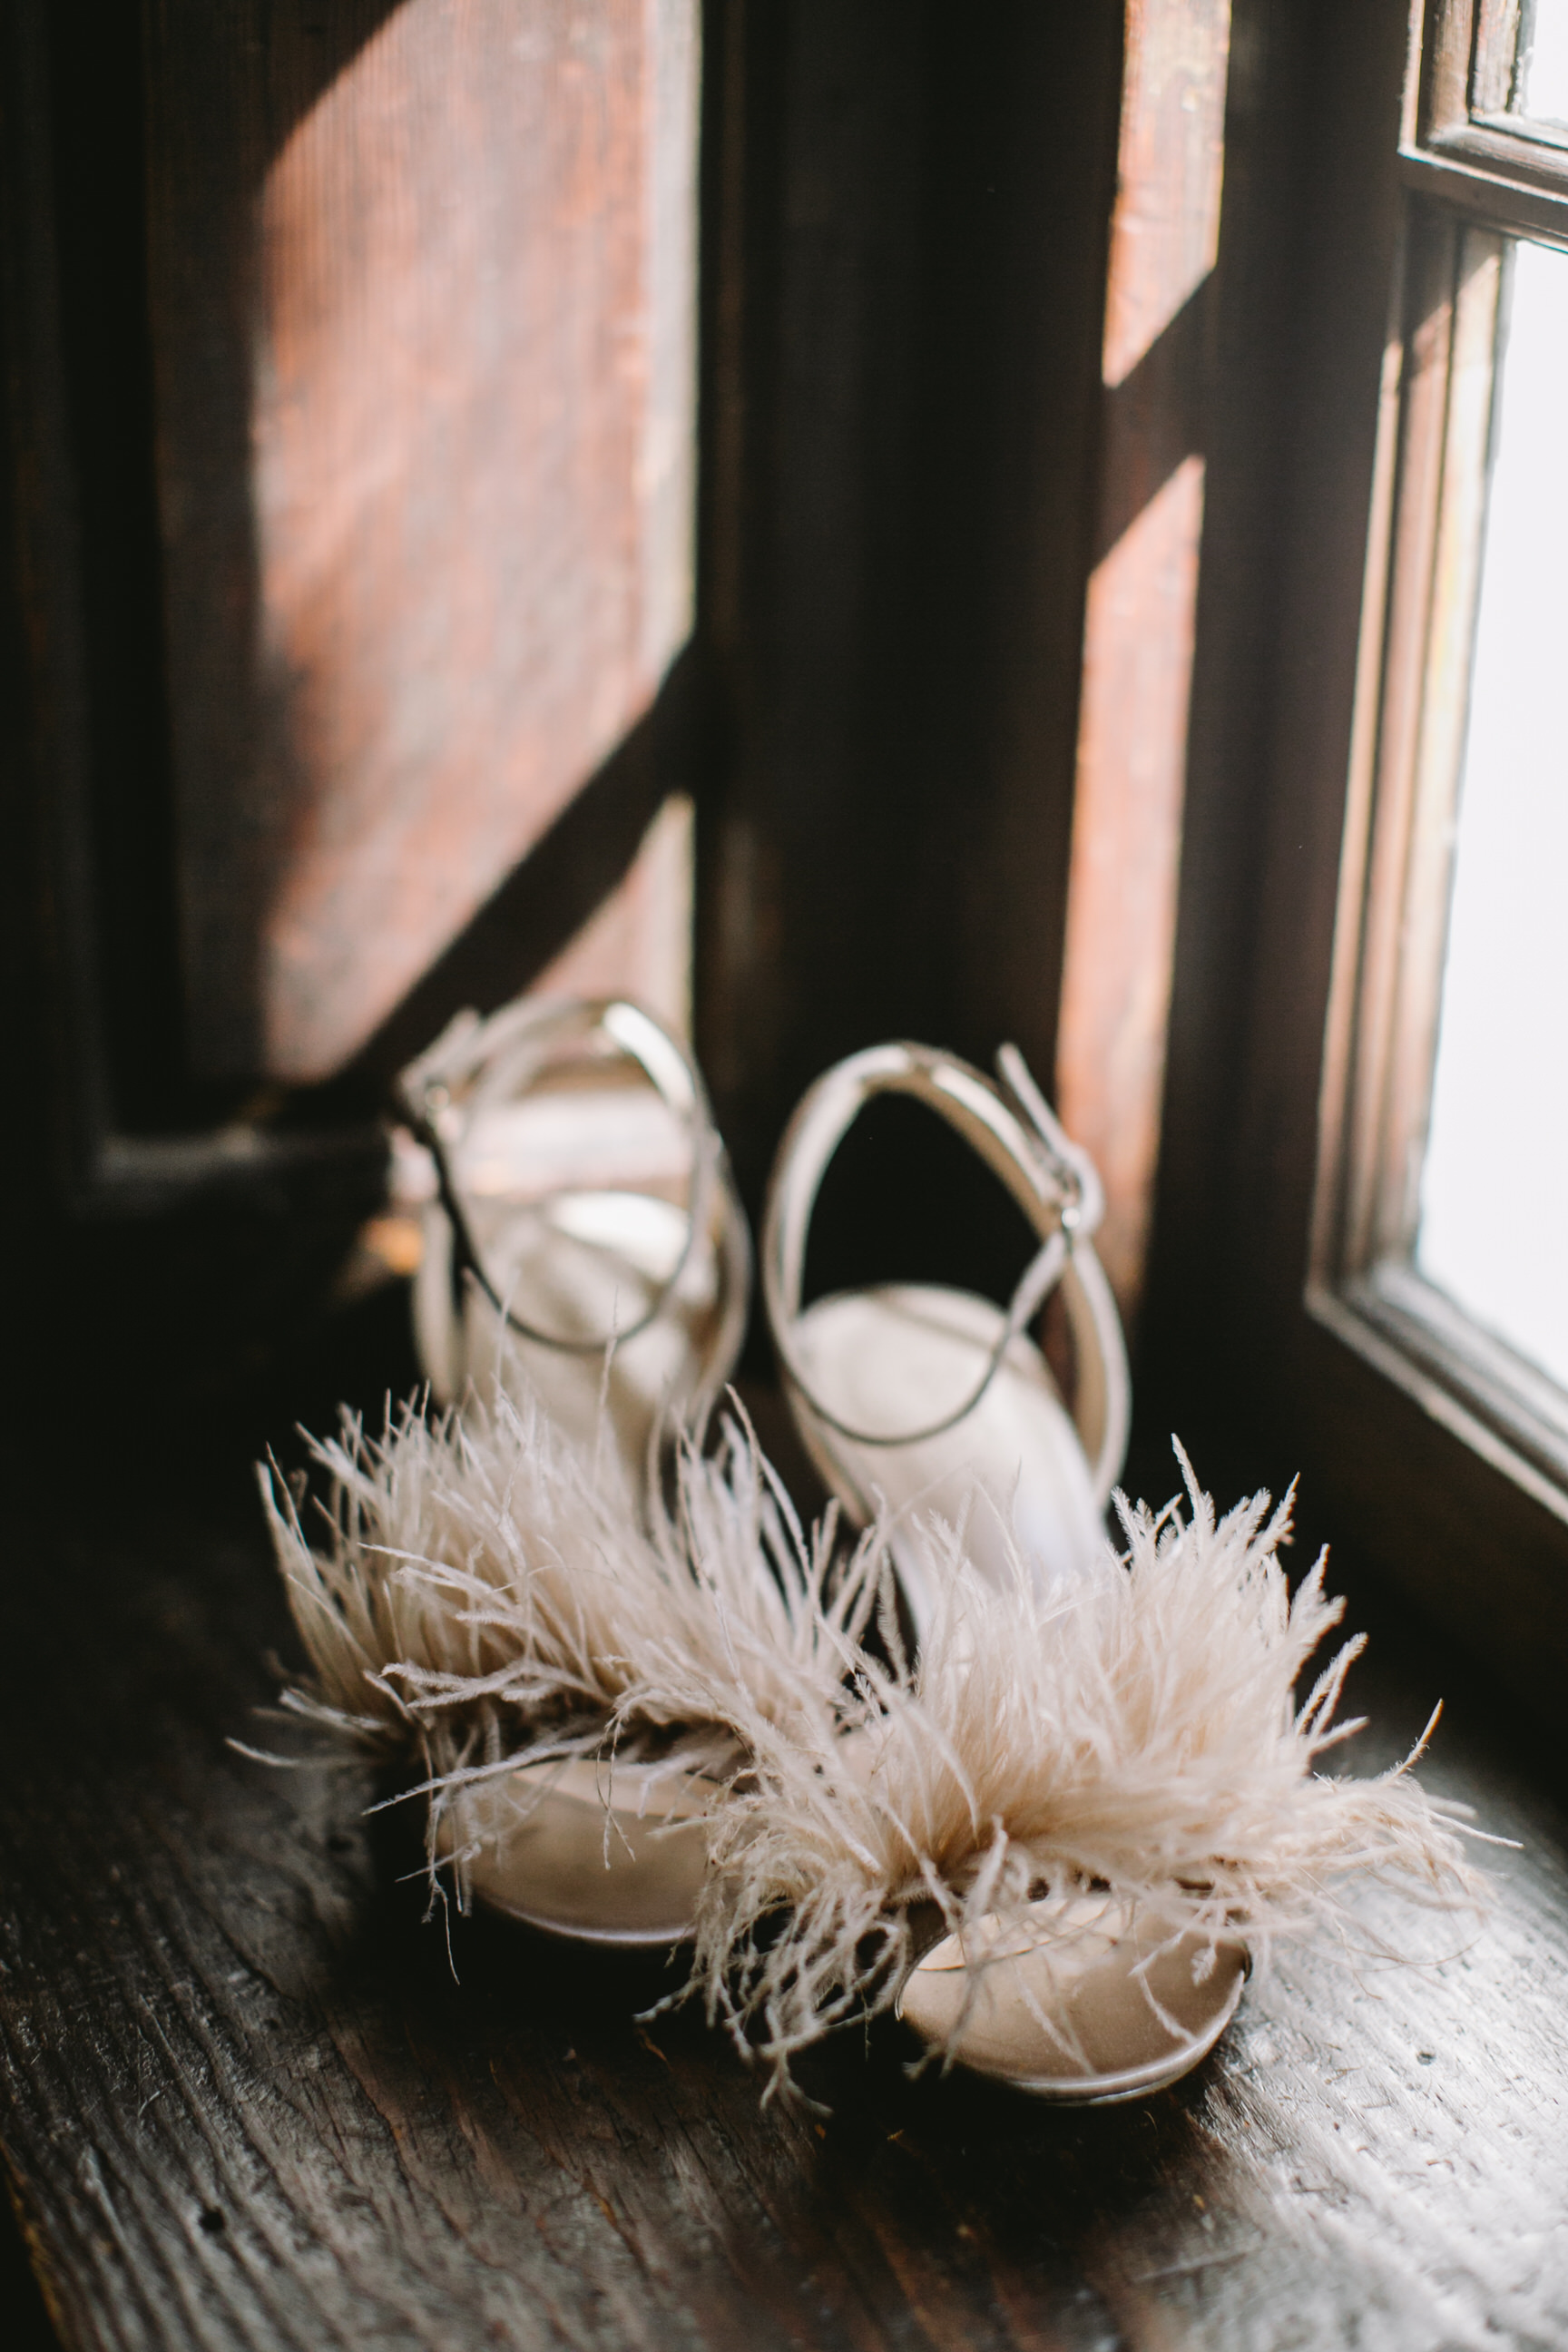 01 Appleford Estate Wedding Feather Gorgeous Bridal Shoes.jpg